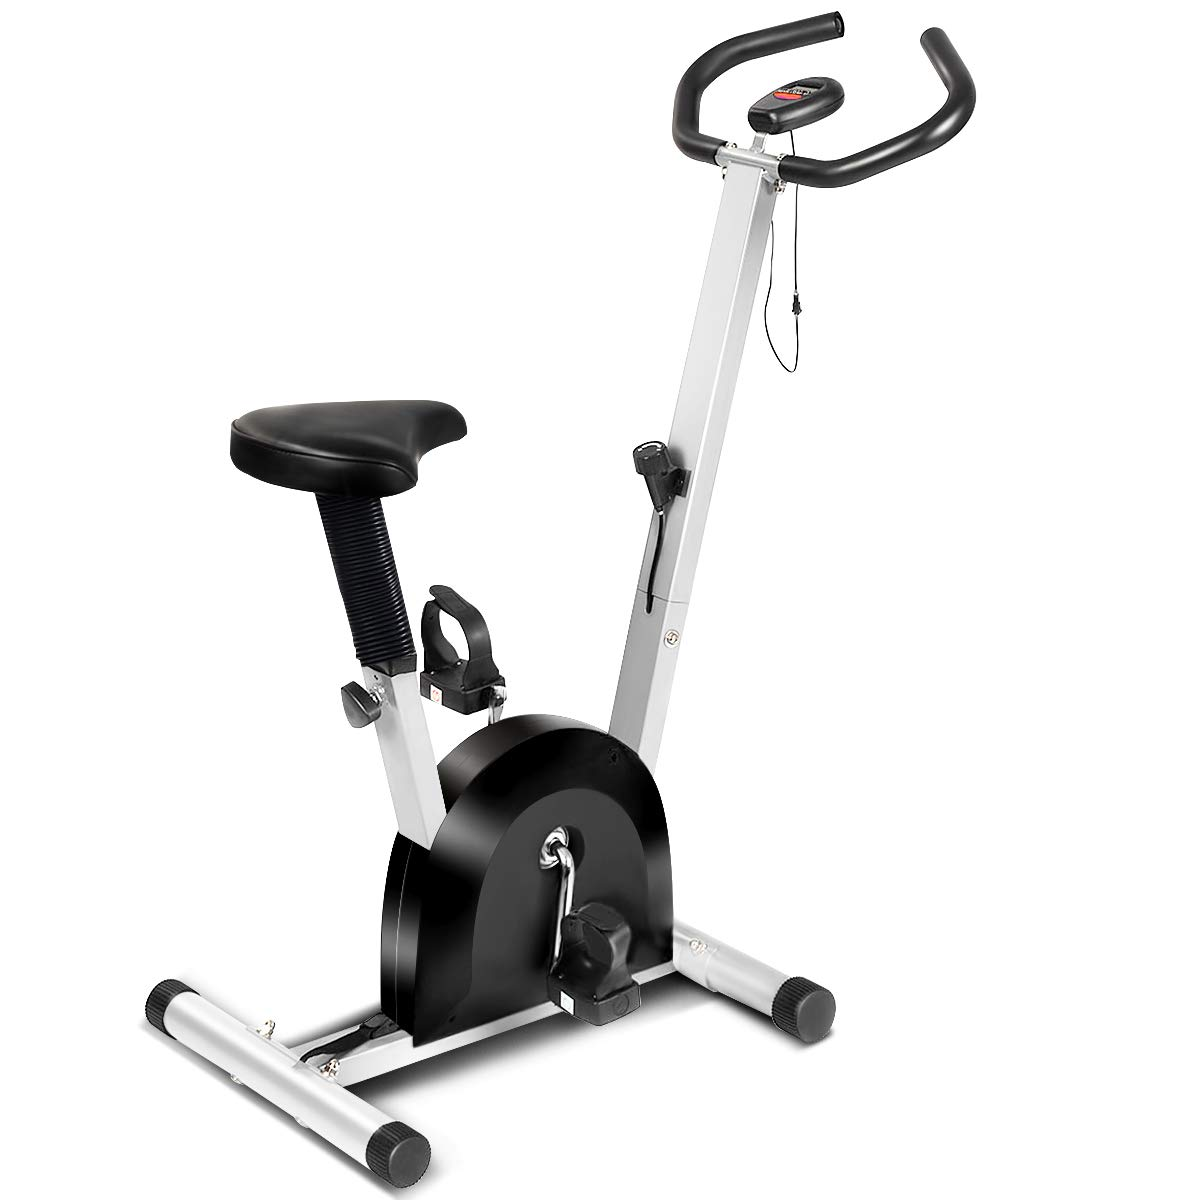 Goplus Exercise Bike Cardio Fitness Cycling Machine Gym Workout Training Stationary Indoor Cycling Bike